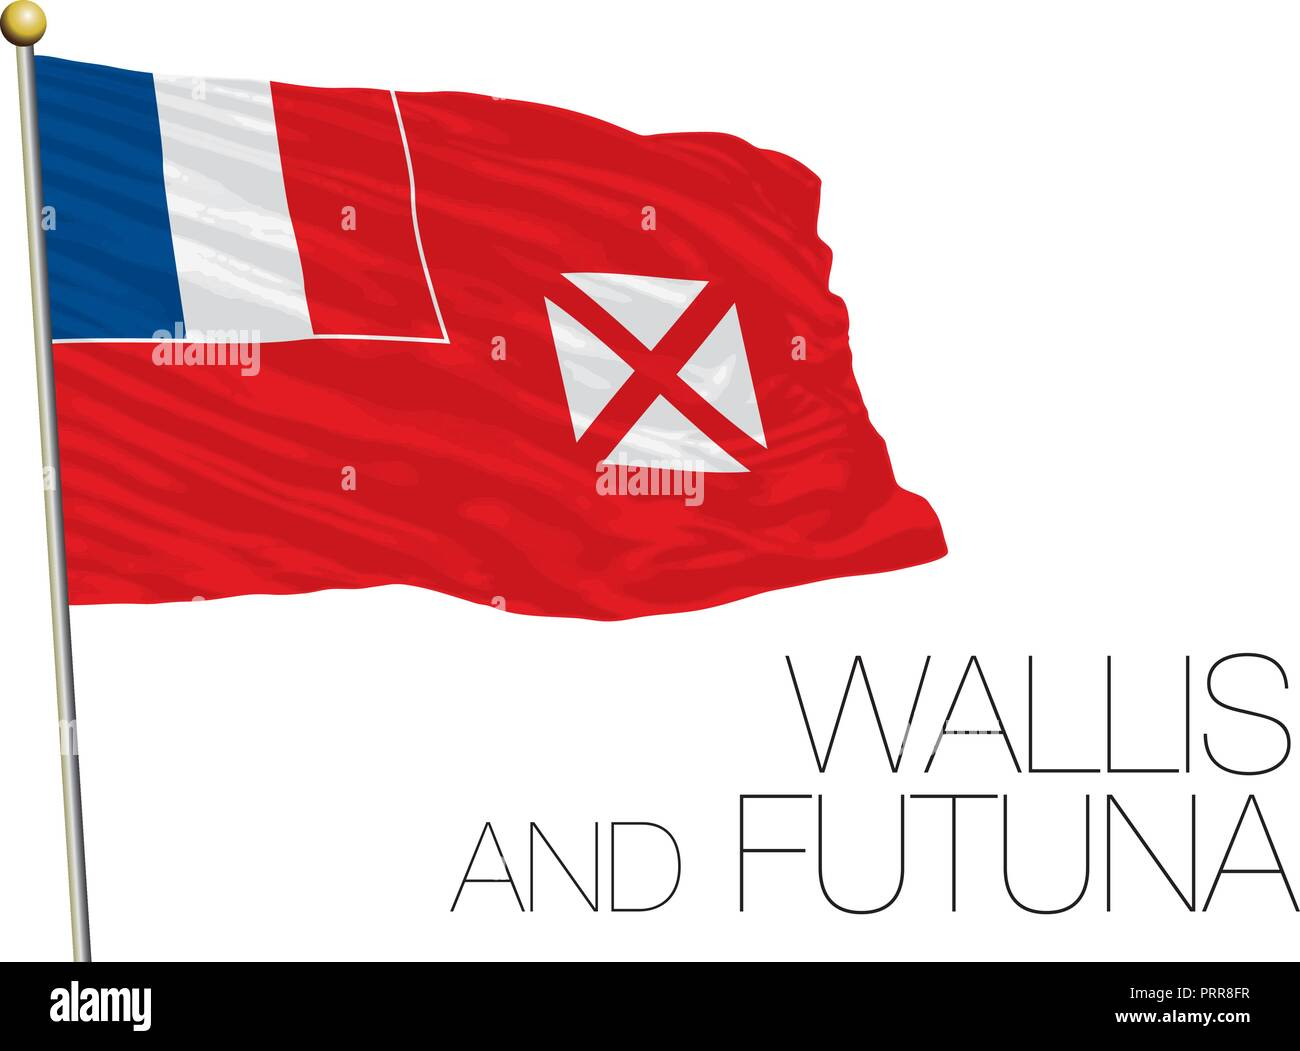 Wallis and Futuna official flag, vector illustration - Stock Image